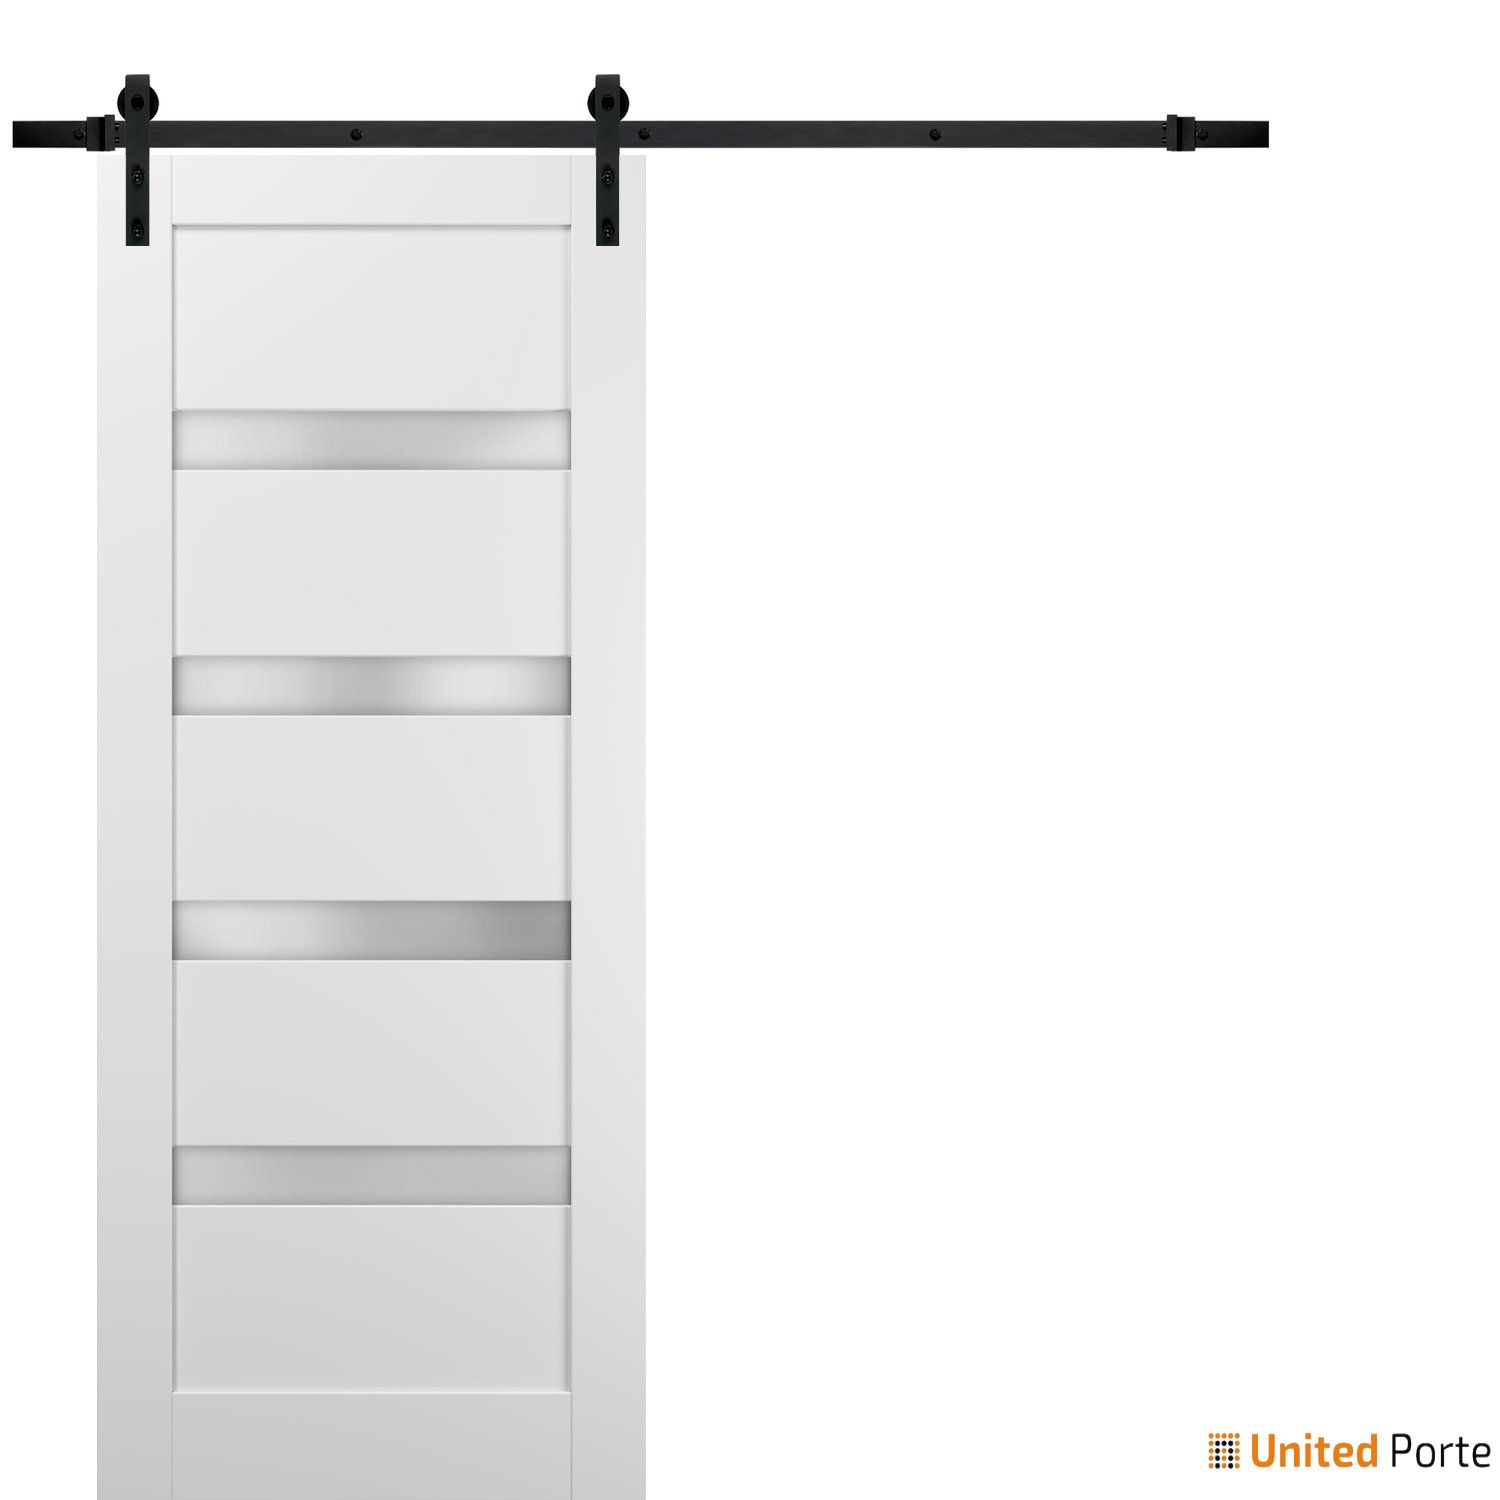 Quadro 4113 White Silk with Frosted Opaque Glass Sliding Barn Door with Black Hardware   Lite Wooden Solid Panel Interior Barn Doors